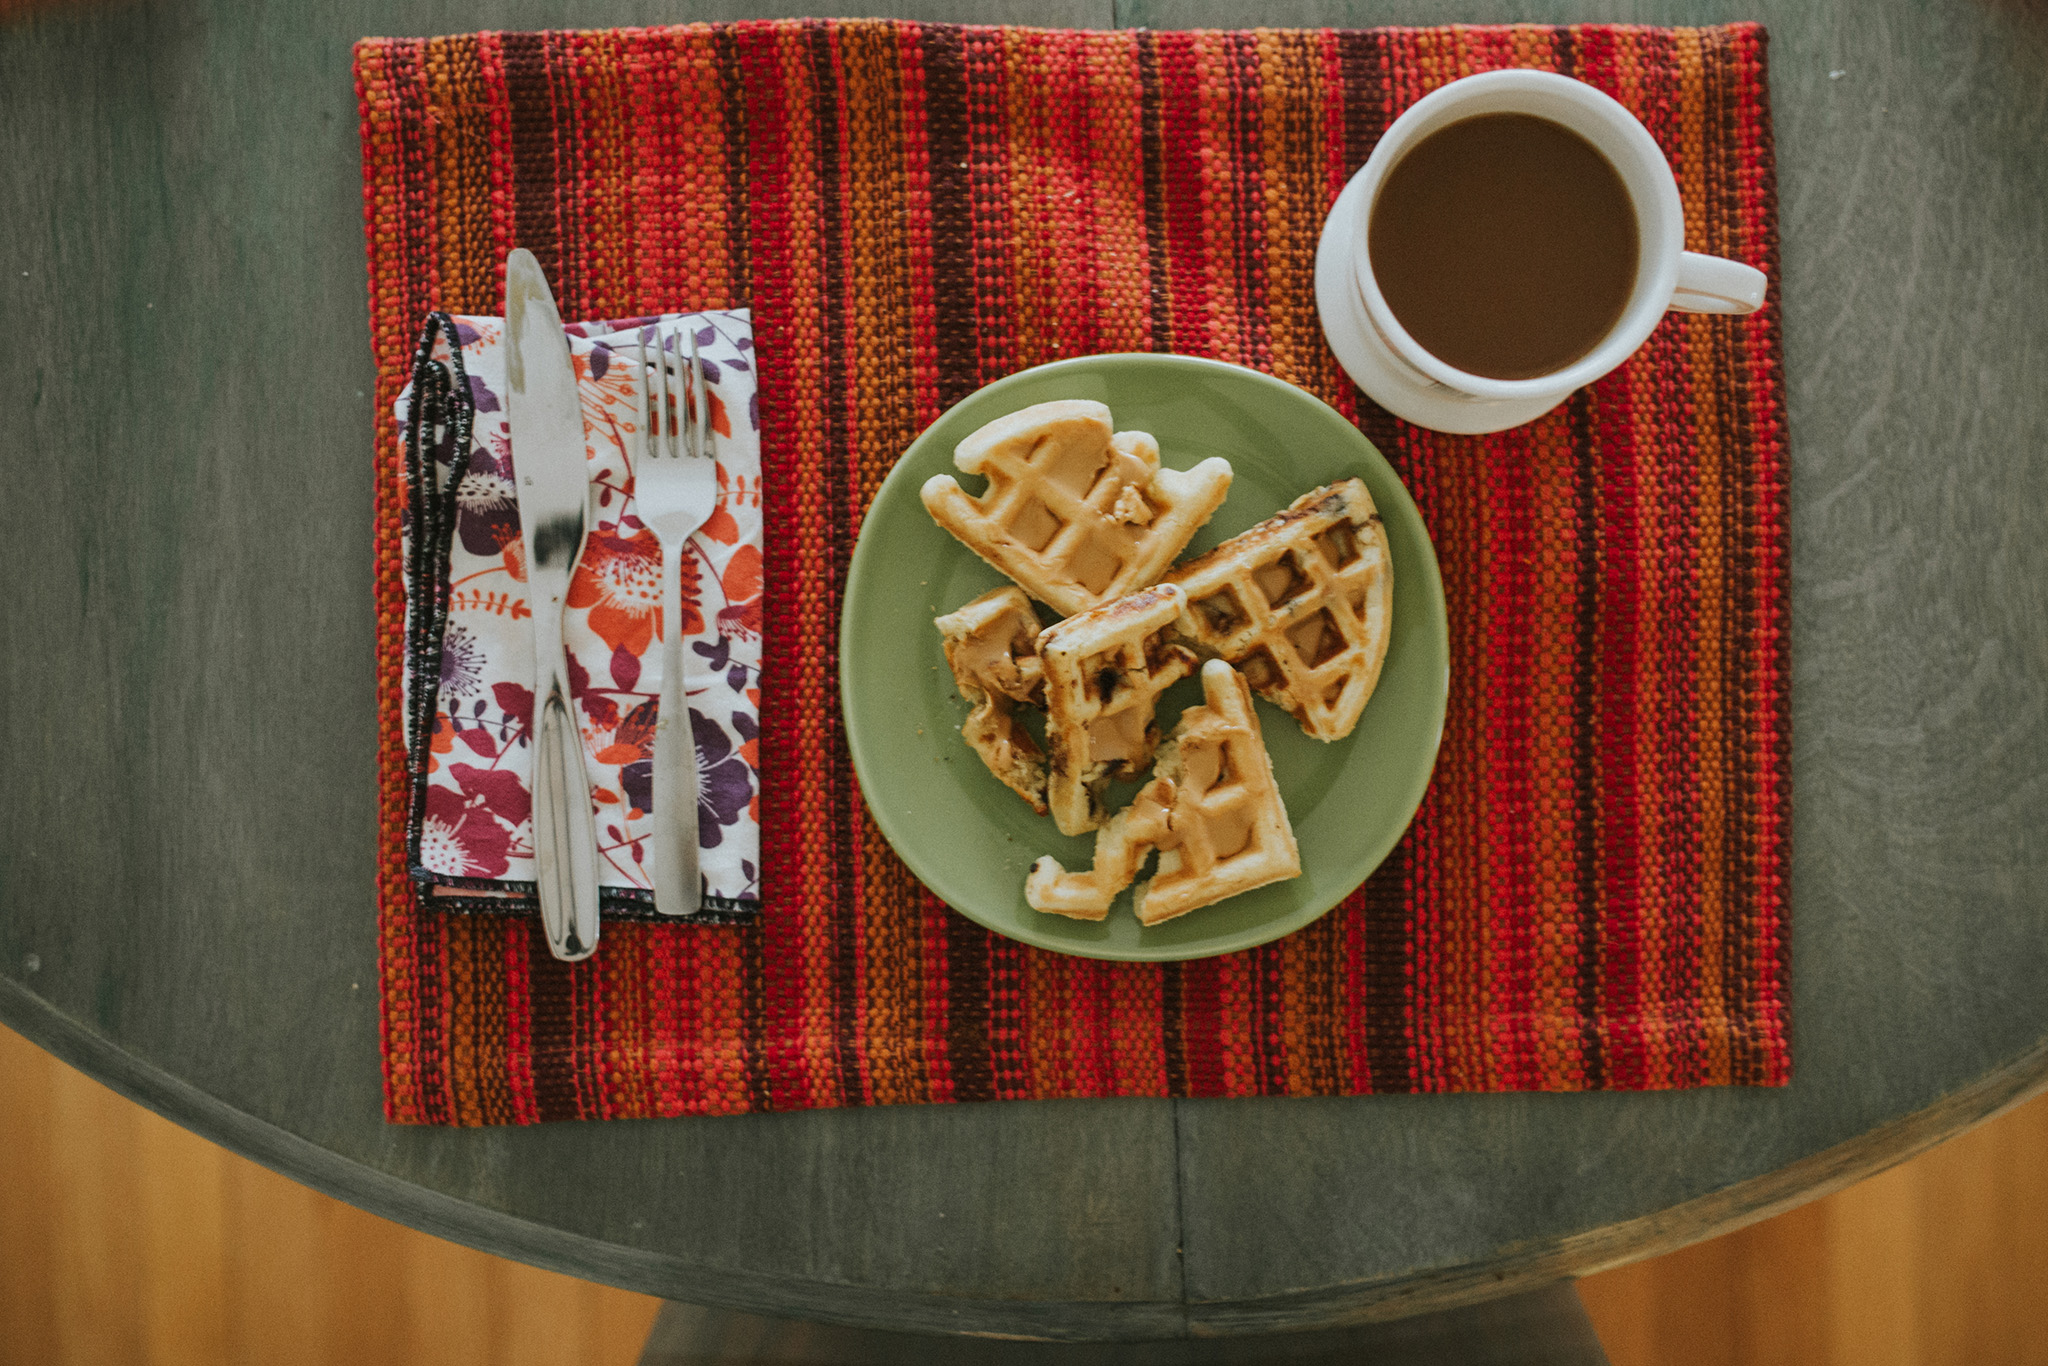 April 20: Waffles are my self-care language. It's a thing.